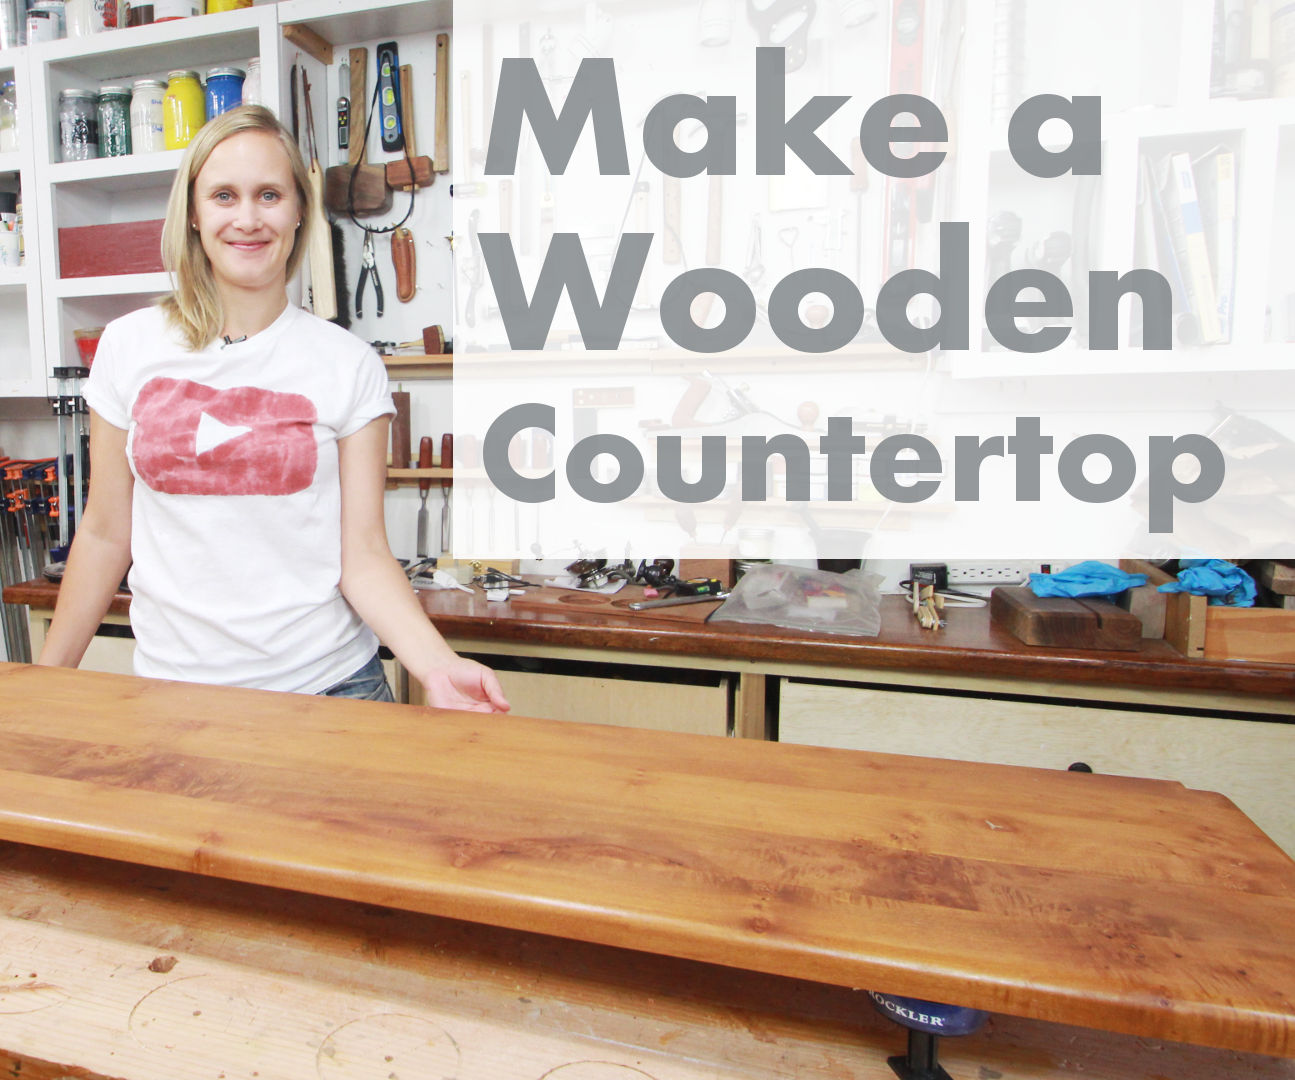 How To Make A Wooden Countertop 8 Steps With Pictures Instructables